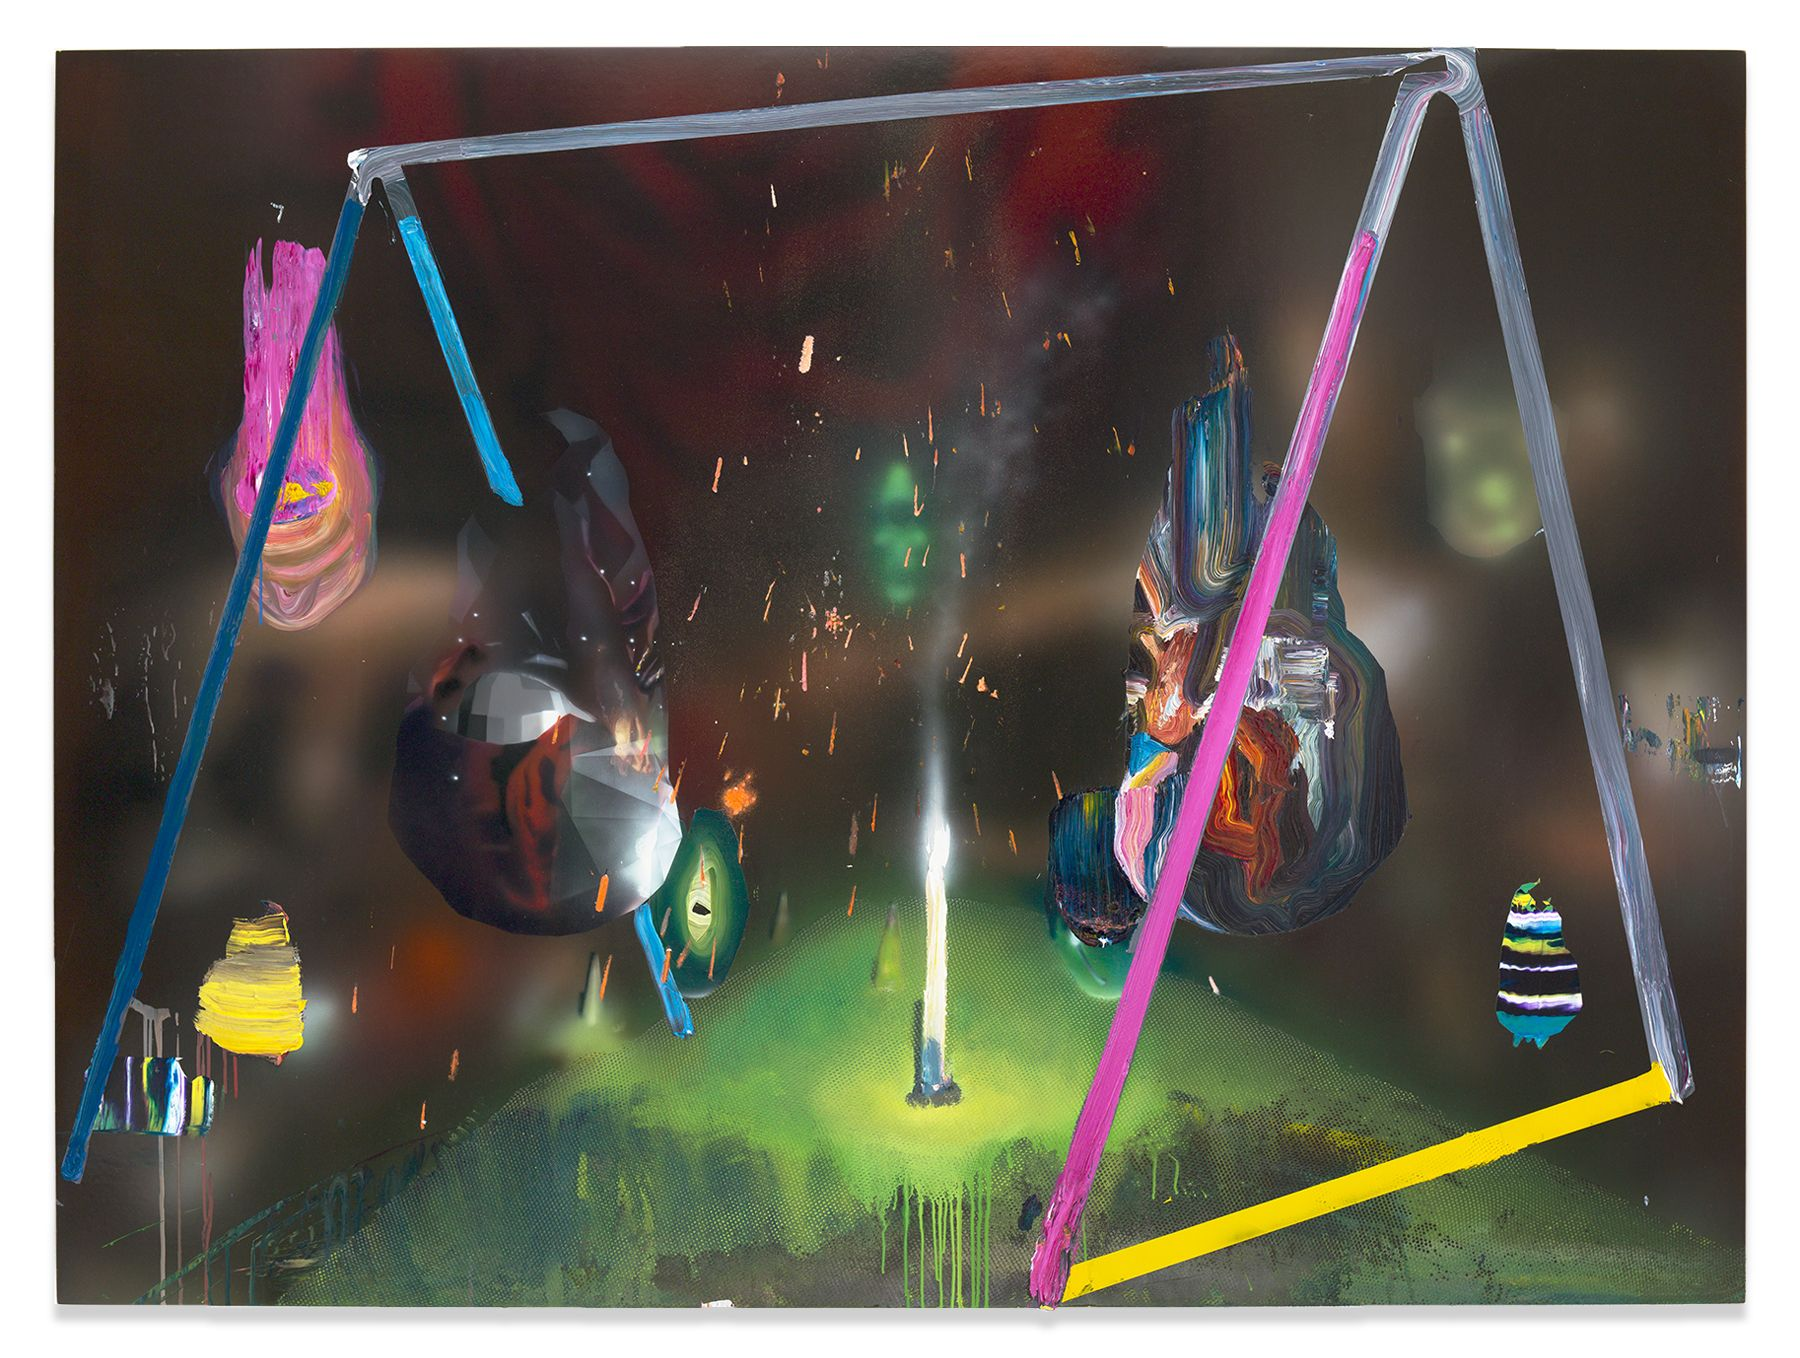 Before Before, 2015, Acrylic, epoxy and glitter on canvas over panel, 57 x 77 inches, 144.8 x 195.6 cm, MMG#29221